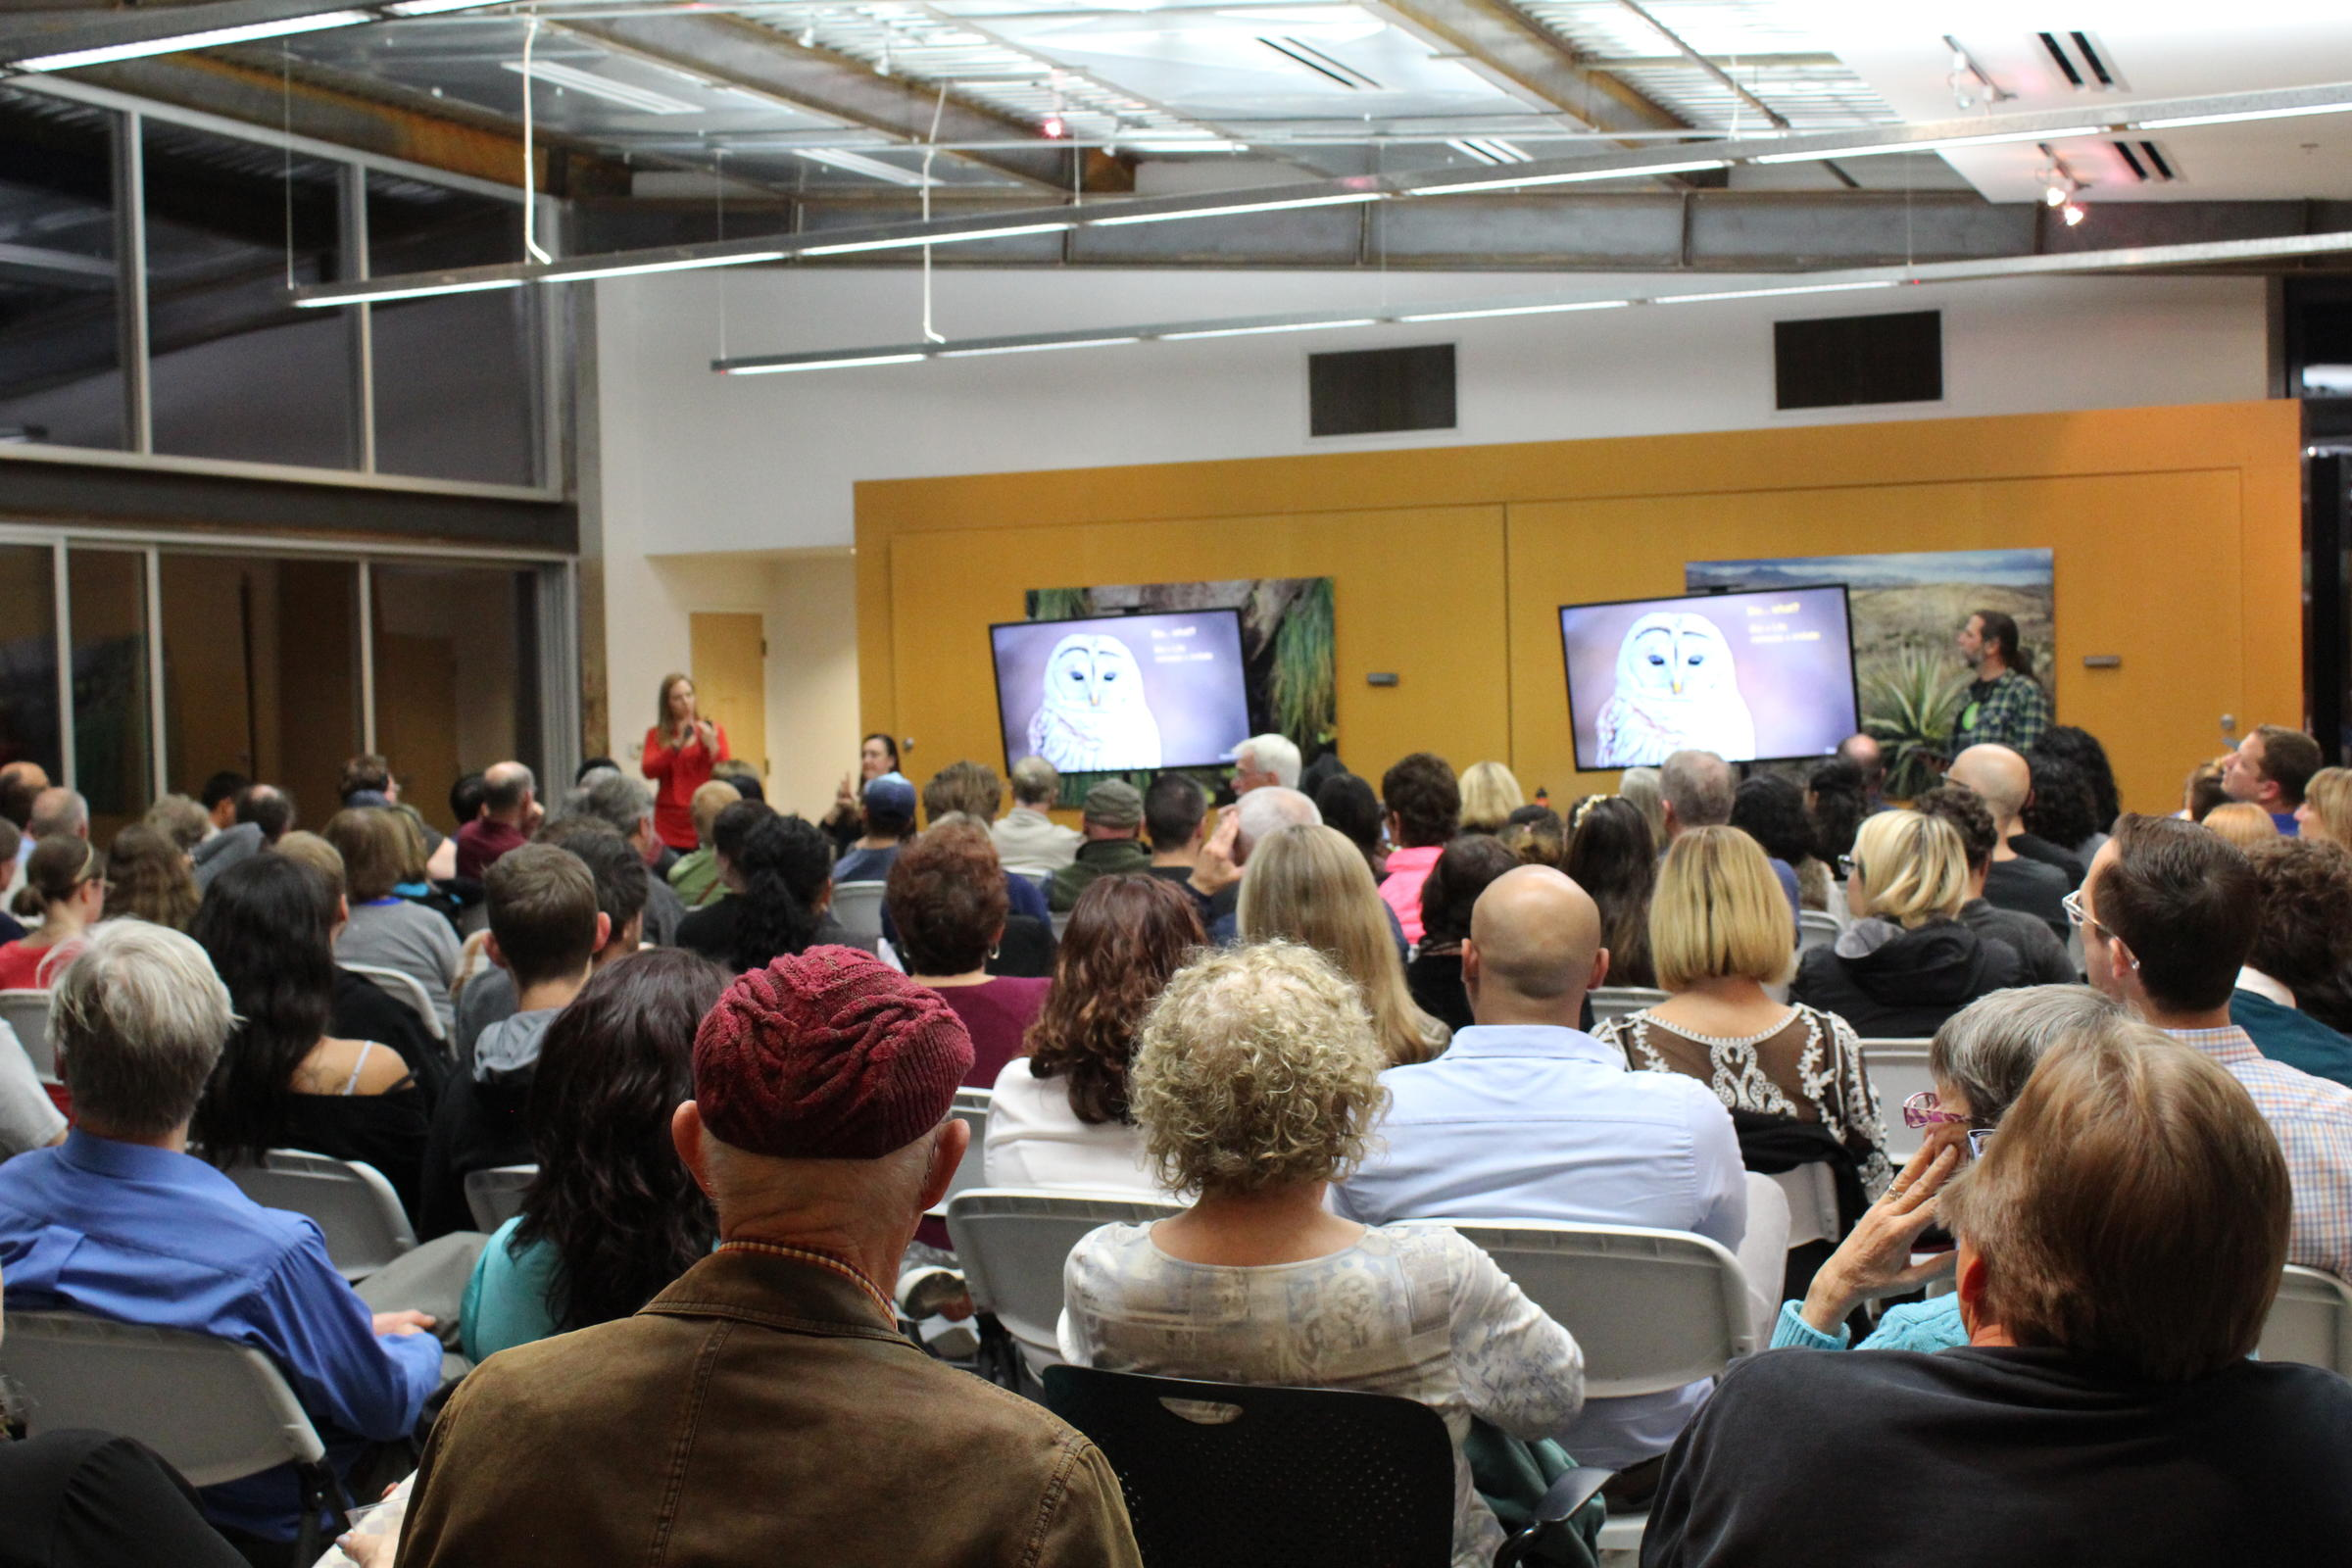 A crowd of people listen to a lecture on biomimicry while seeing images of inspirations from nature, like a owl, on a TV screen.